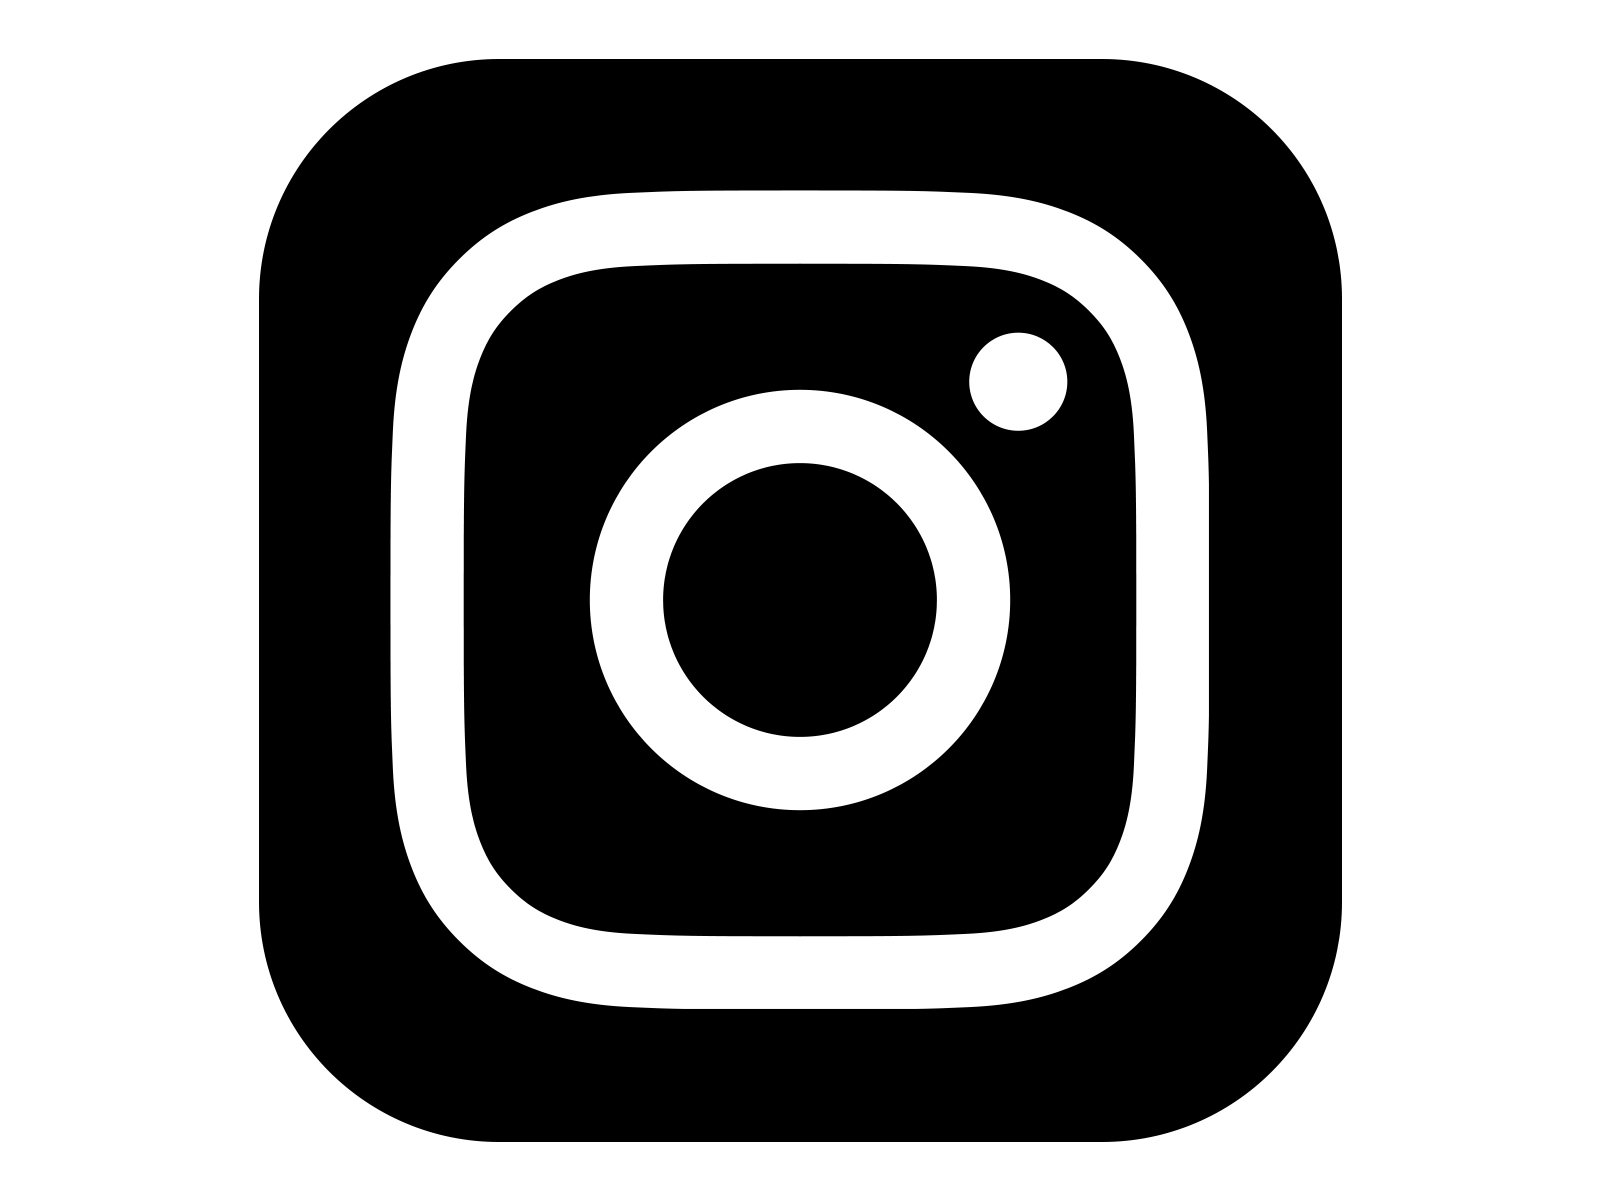 Whit clipart instagram Freebie Icon Logo Black Instagram